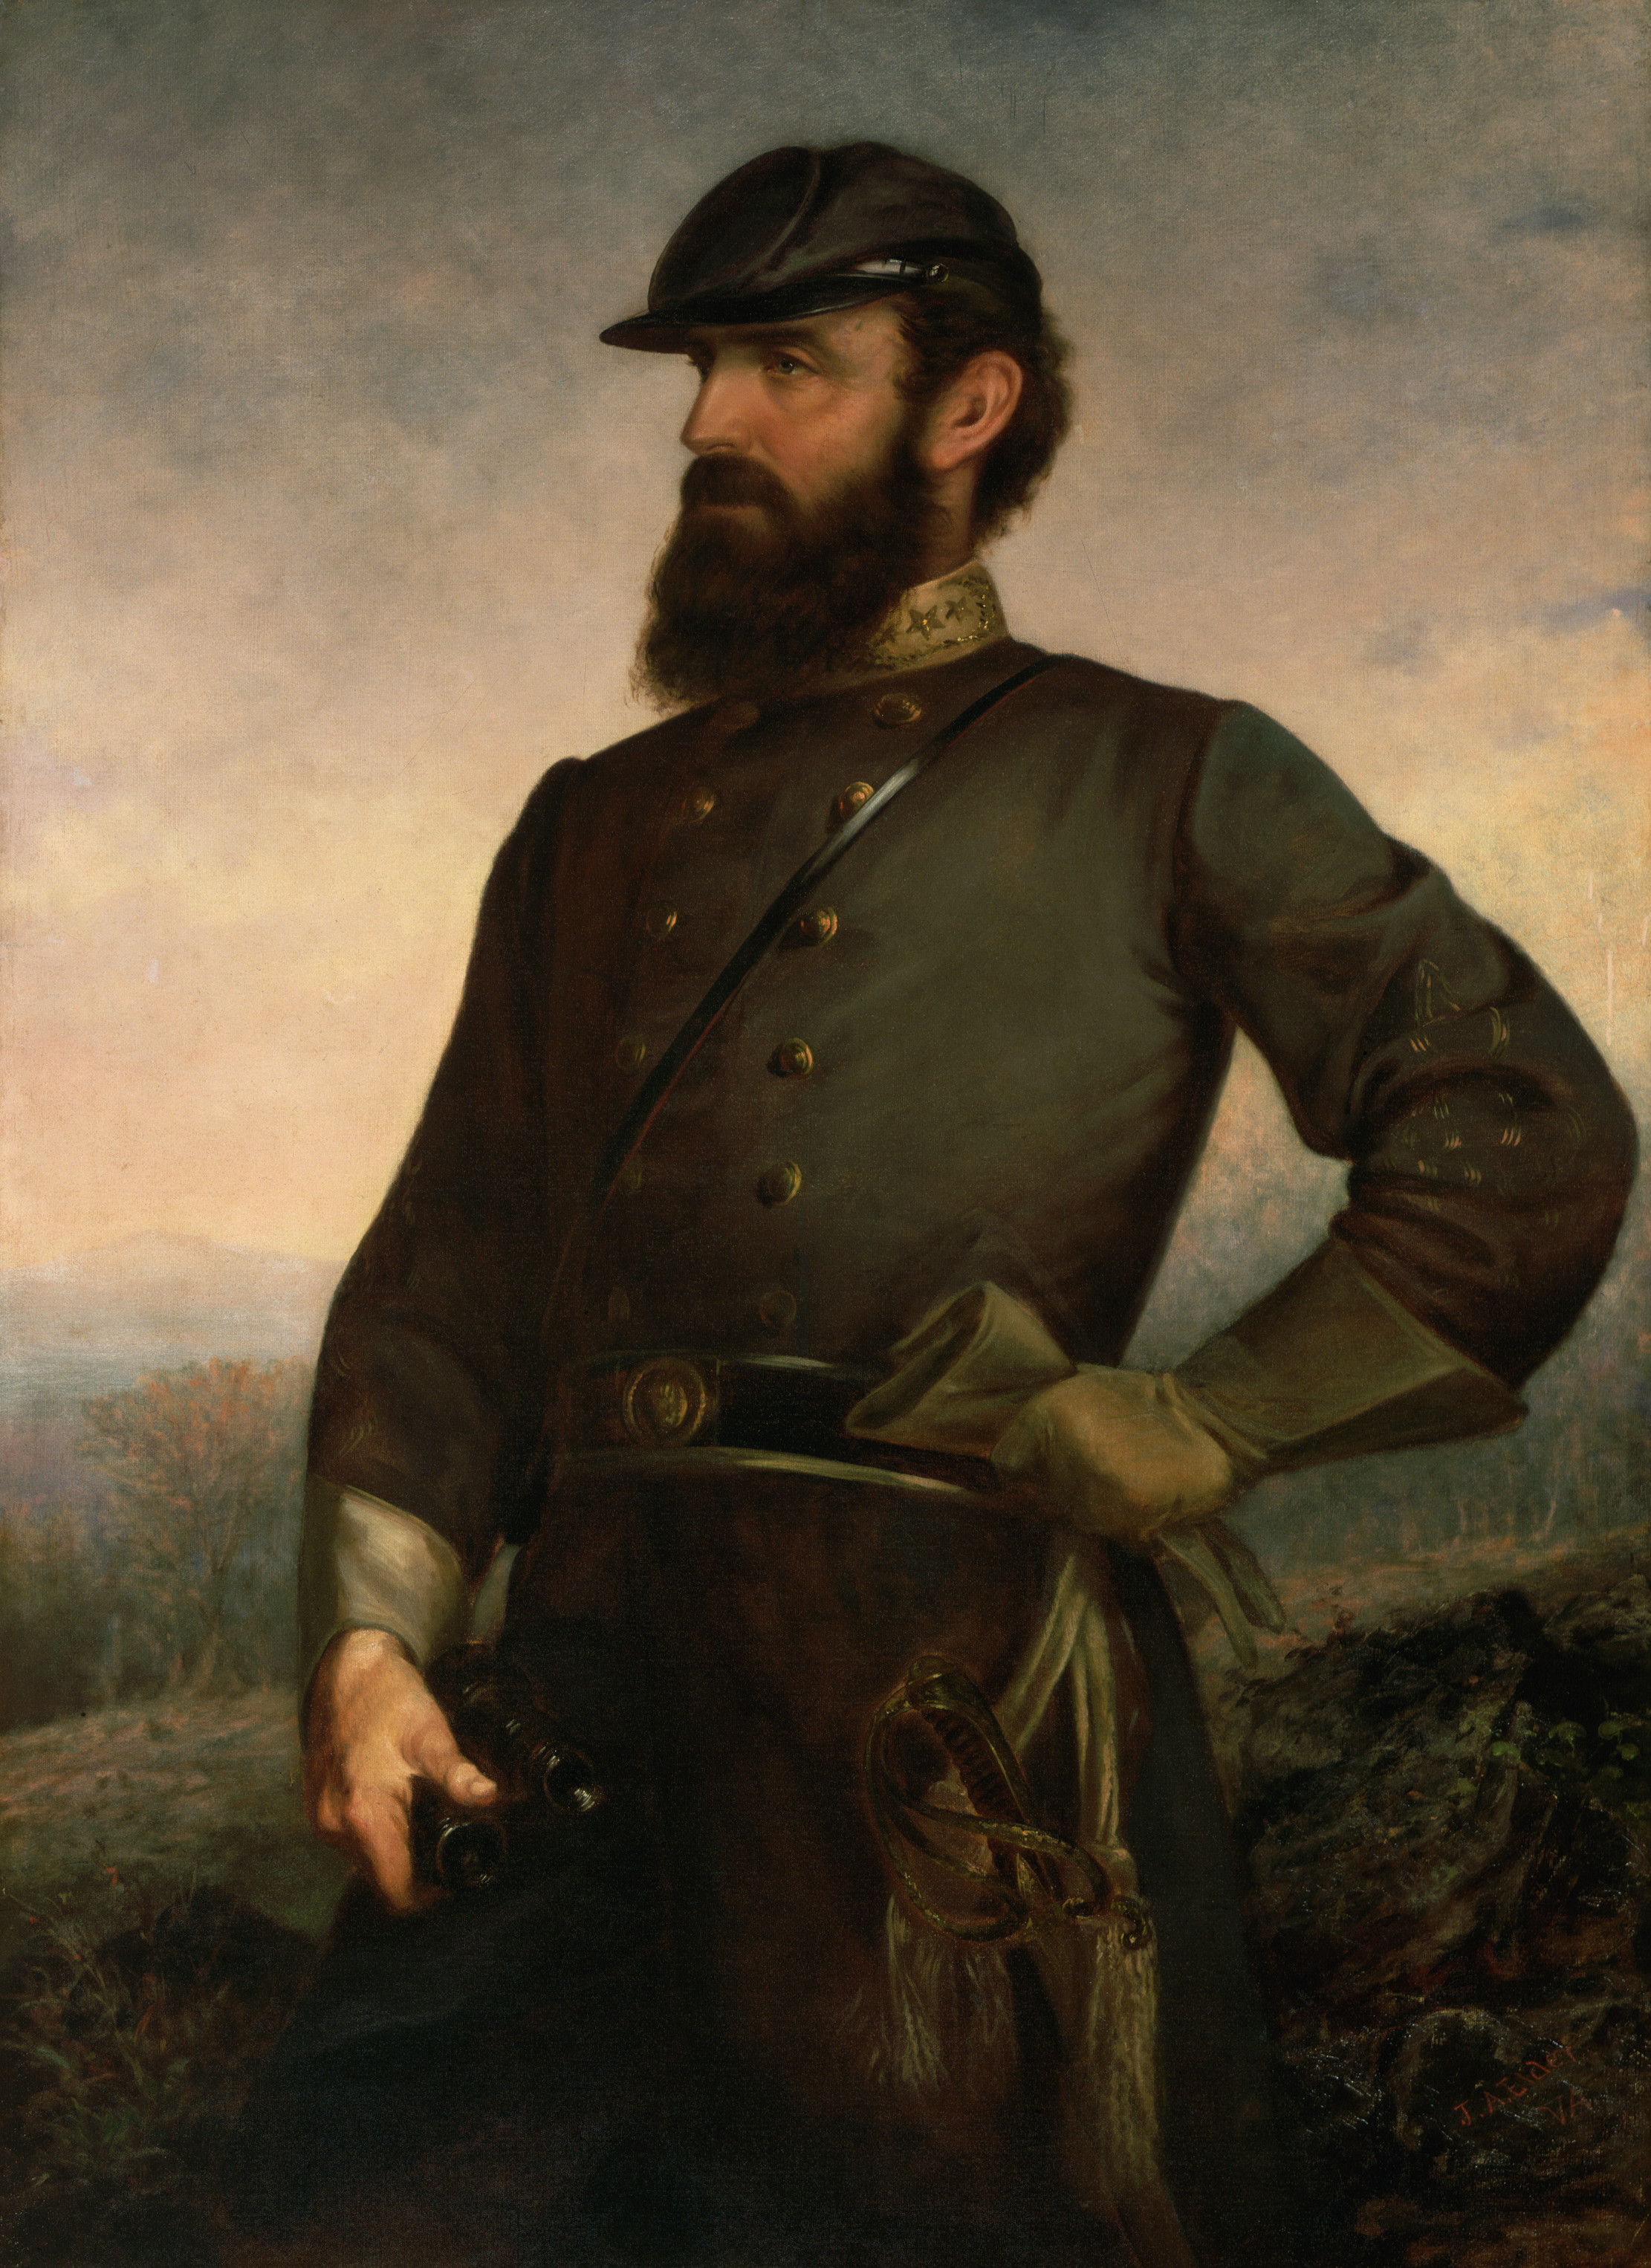 an overview of stonewall jackson life Thomas jonathan jackson, better known as stonewall jackson, was a famous 'confederate' general who served during the american civil war.